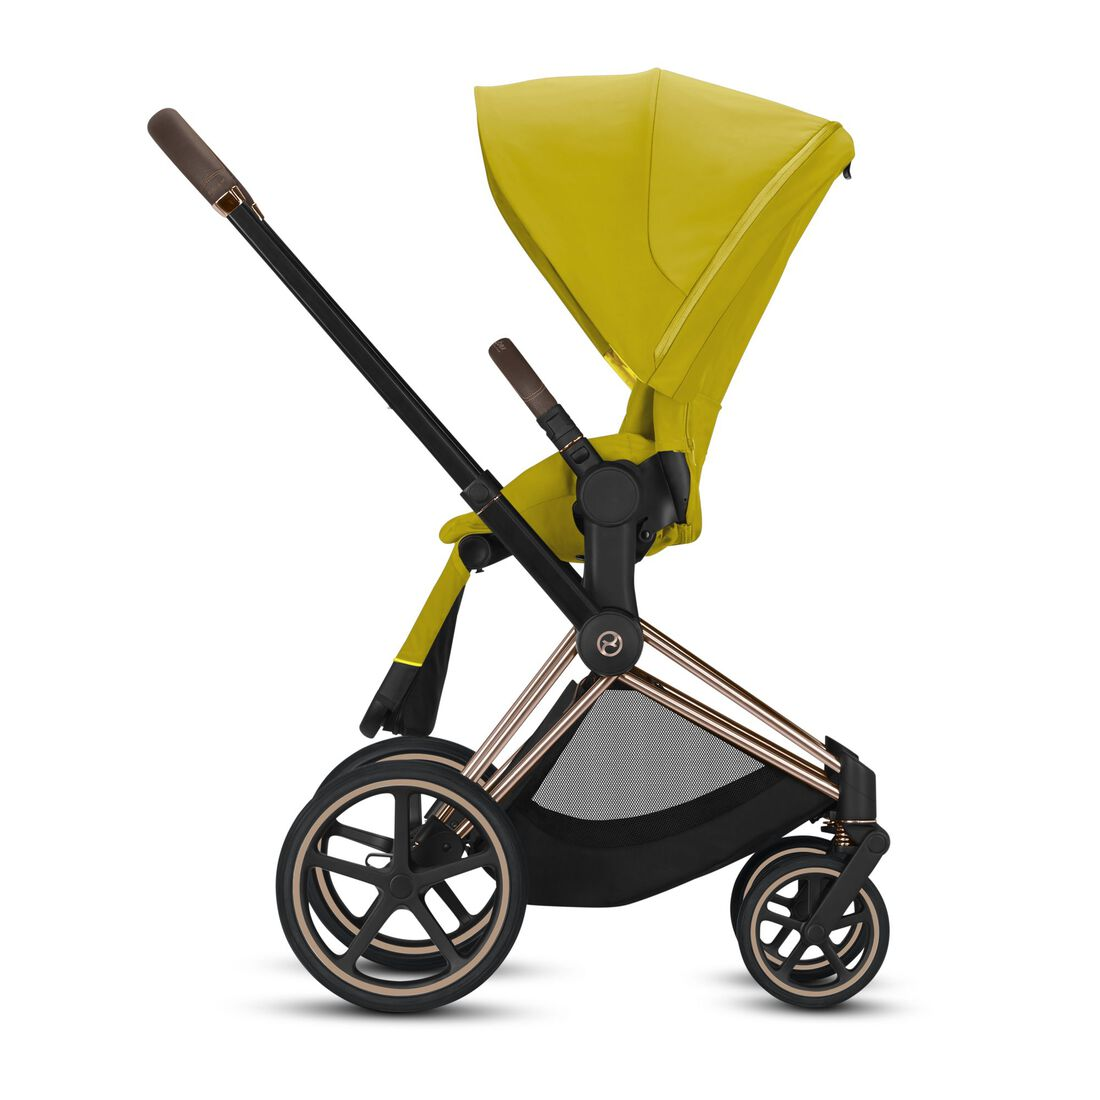 CYBEX Priam Seat Pack - Mustard Yellow in Mustard Yellow large image number 2